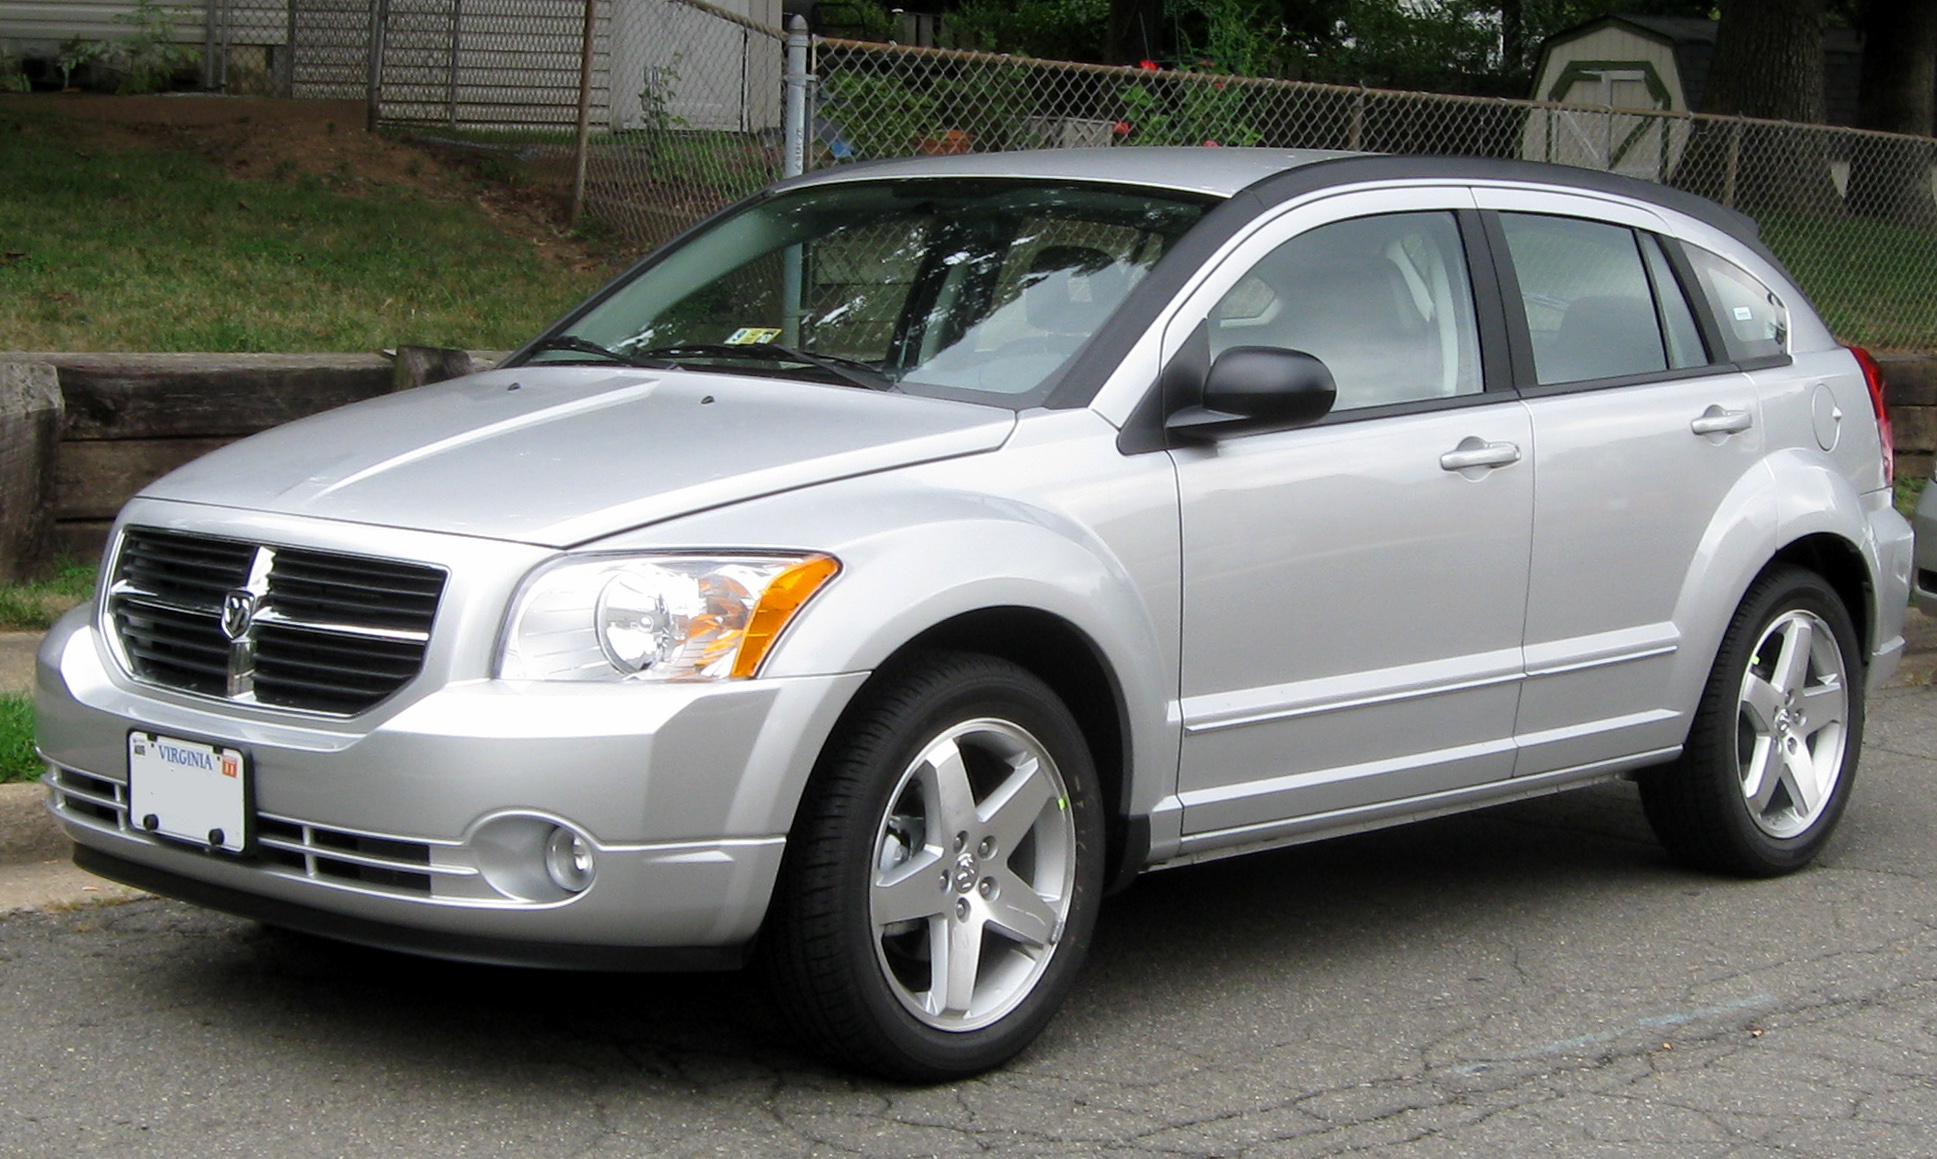 Dodge Caliber 2008 Dodge Caliber Fuse Locations 2012 Dodge Caliber Fuse Box  Location